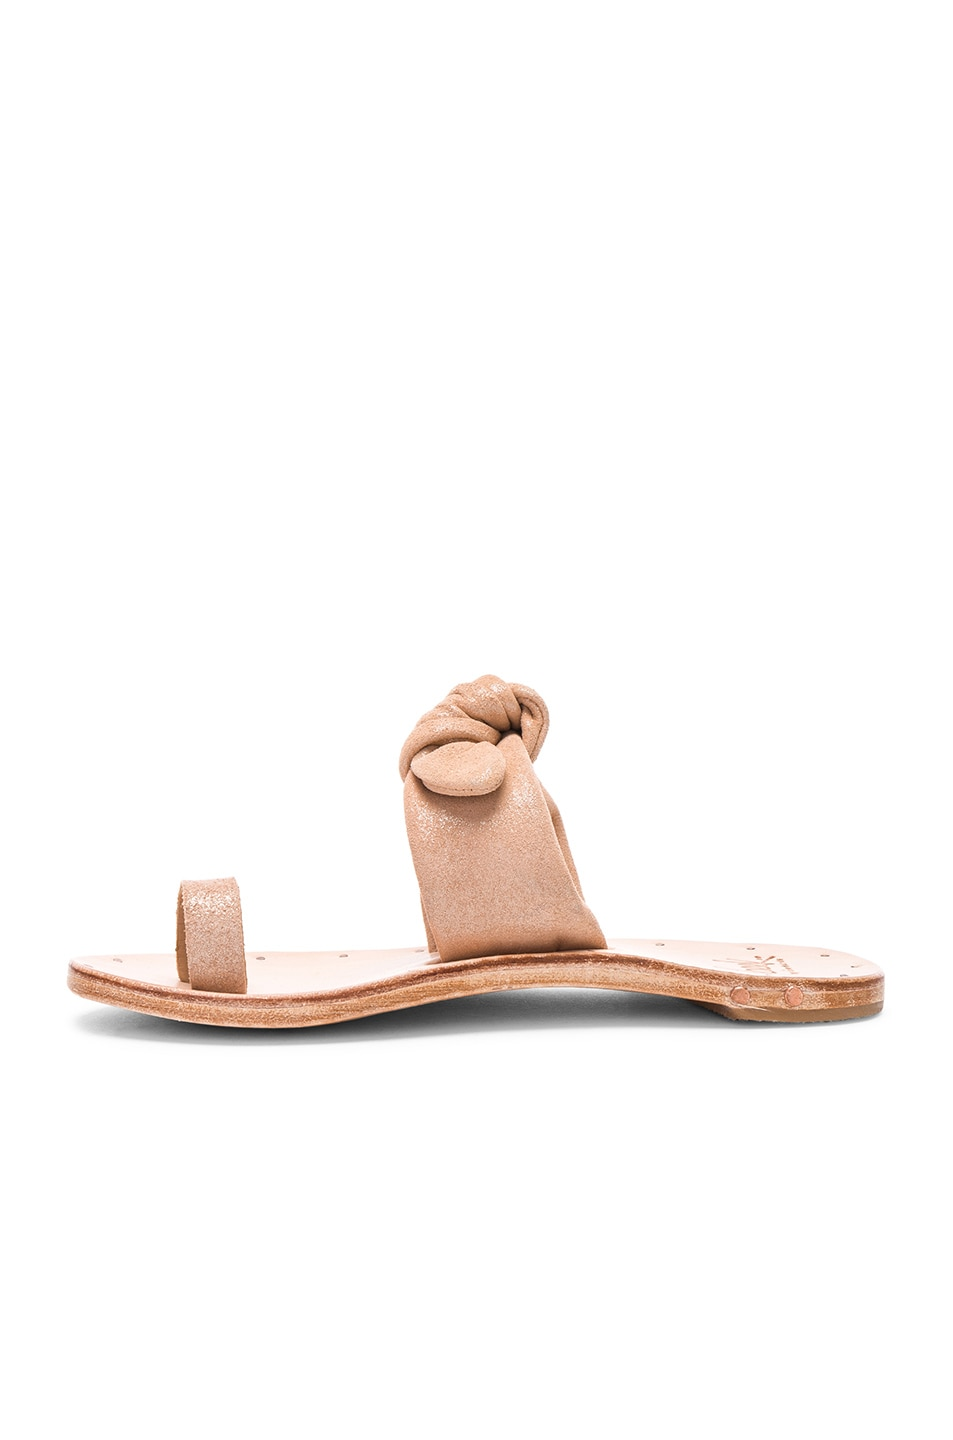 Cheap Buy Authentic BEEK Lory Sandal in Metallic Apricot & Tan Clearance Fast Delivery IywjoS9E